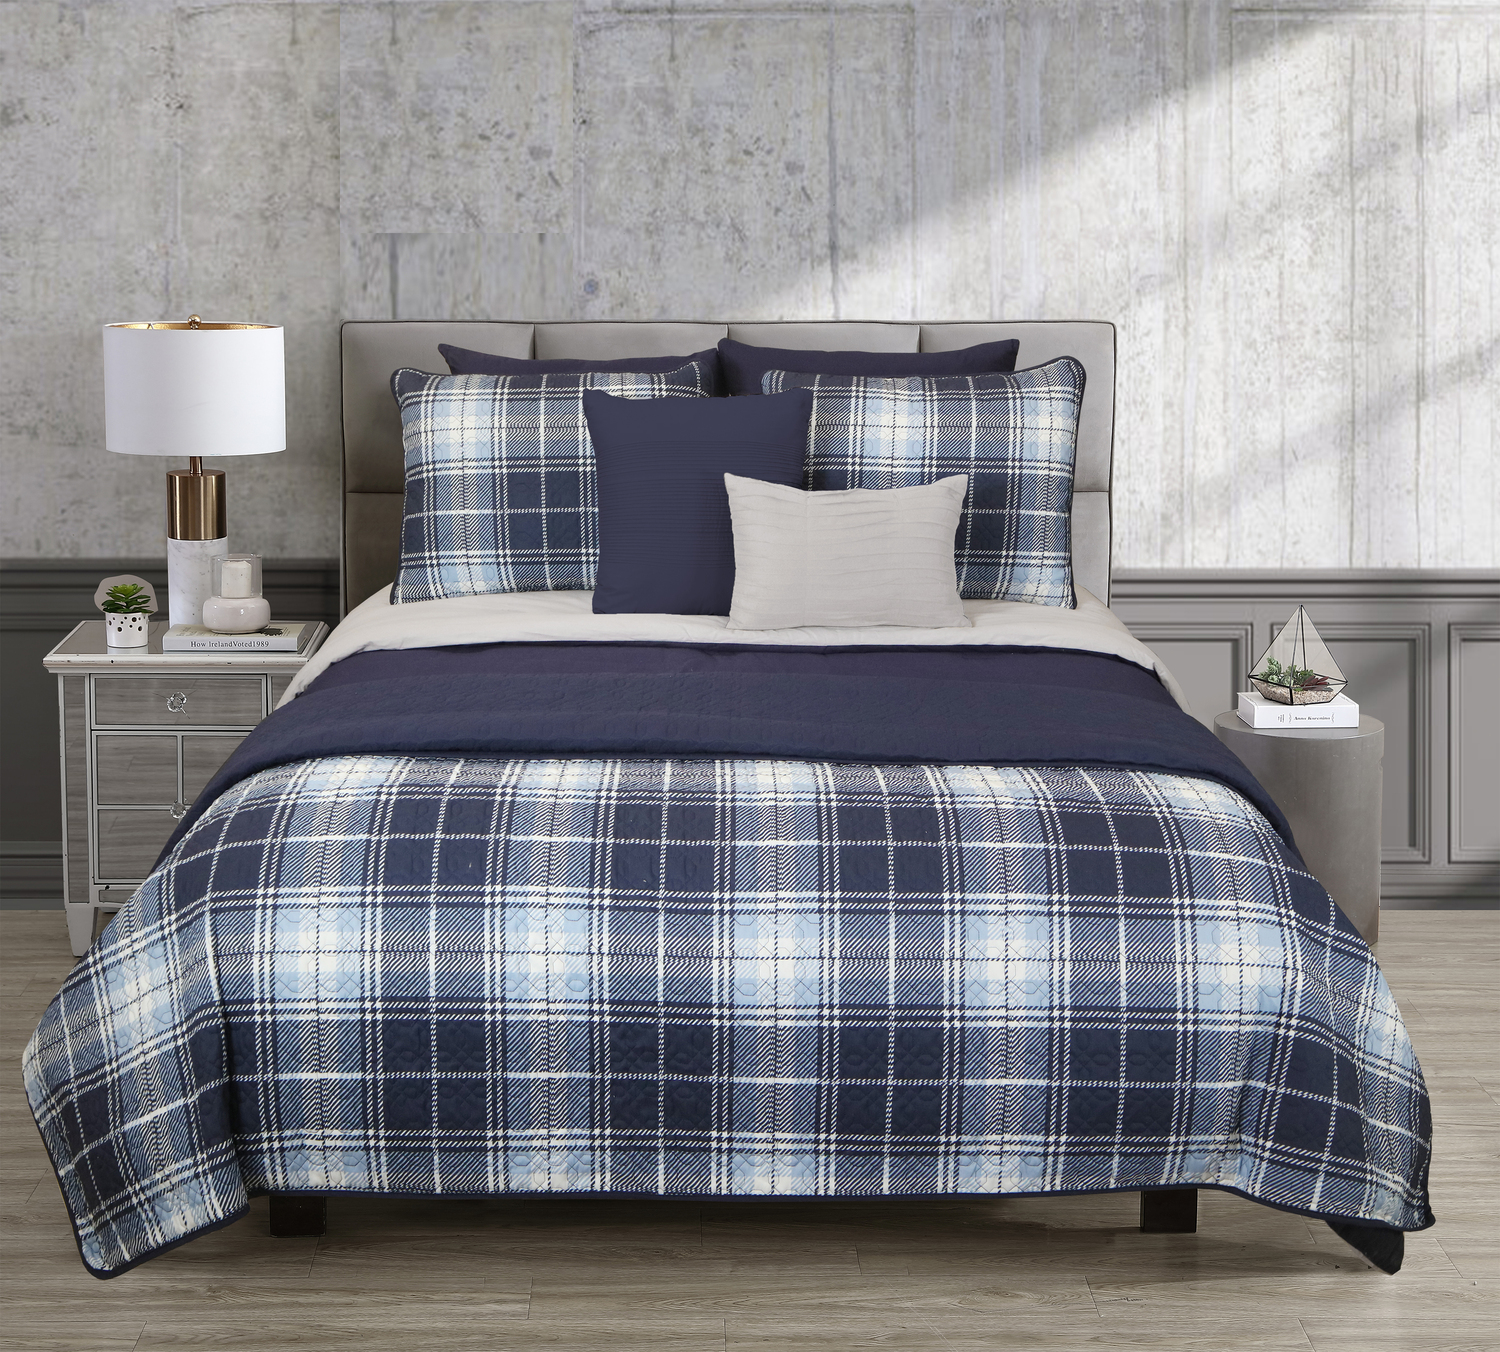 Blue Plaid by Riverbrook Home Bedding